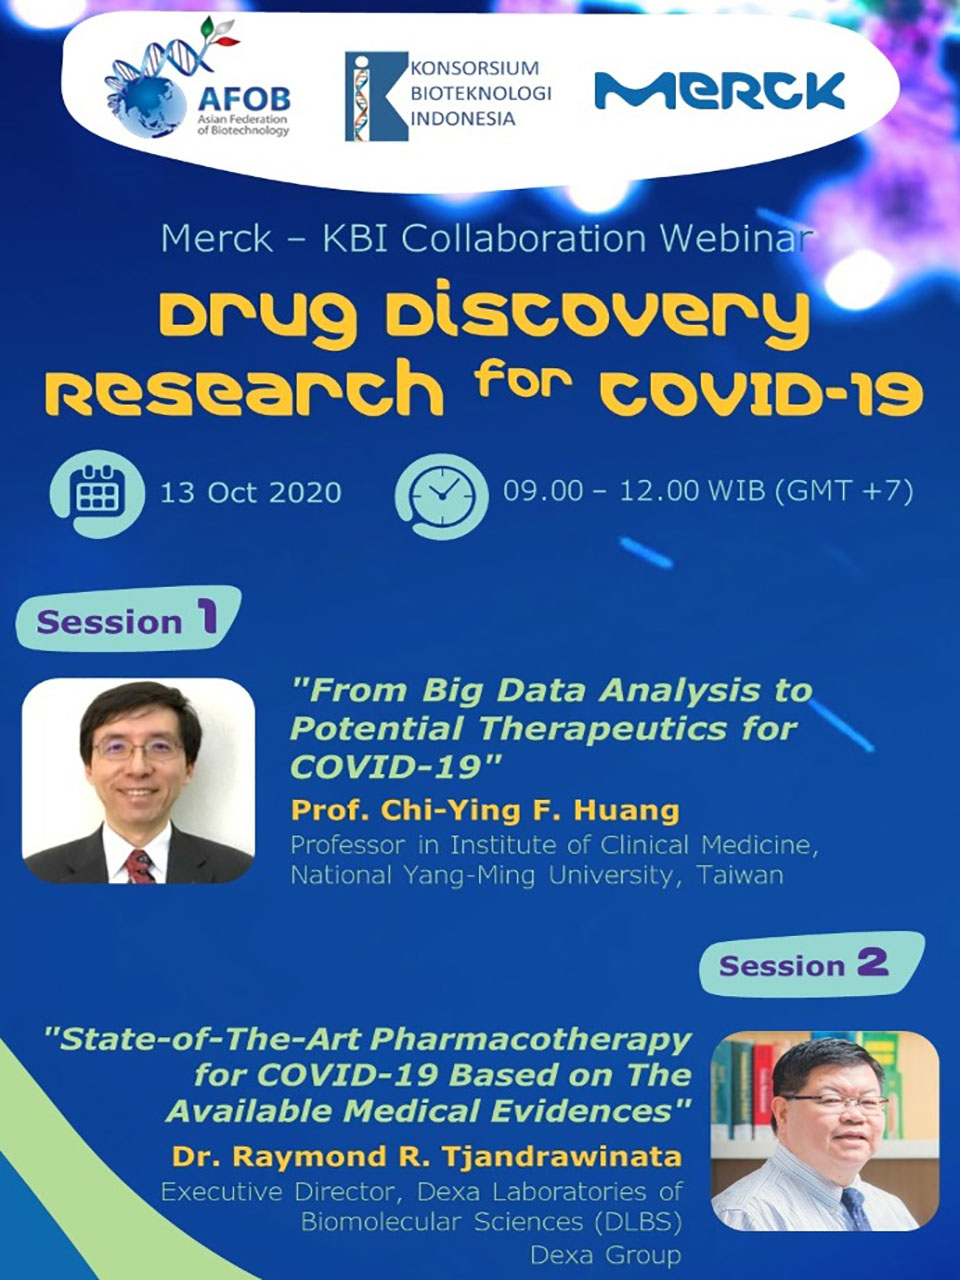 """Drug Discovery Research for COVID-19"" – A Merck Webinar in Collaboration with Konsorsium Bioteknologi Indonesia (KBI) and Asian Federation of Biotechnology (AFOB)"